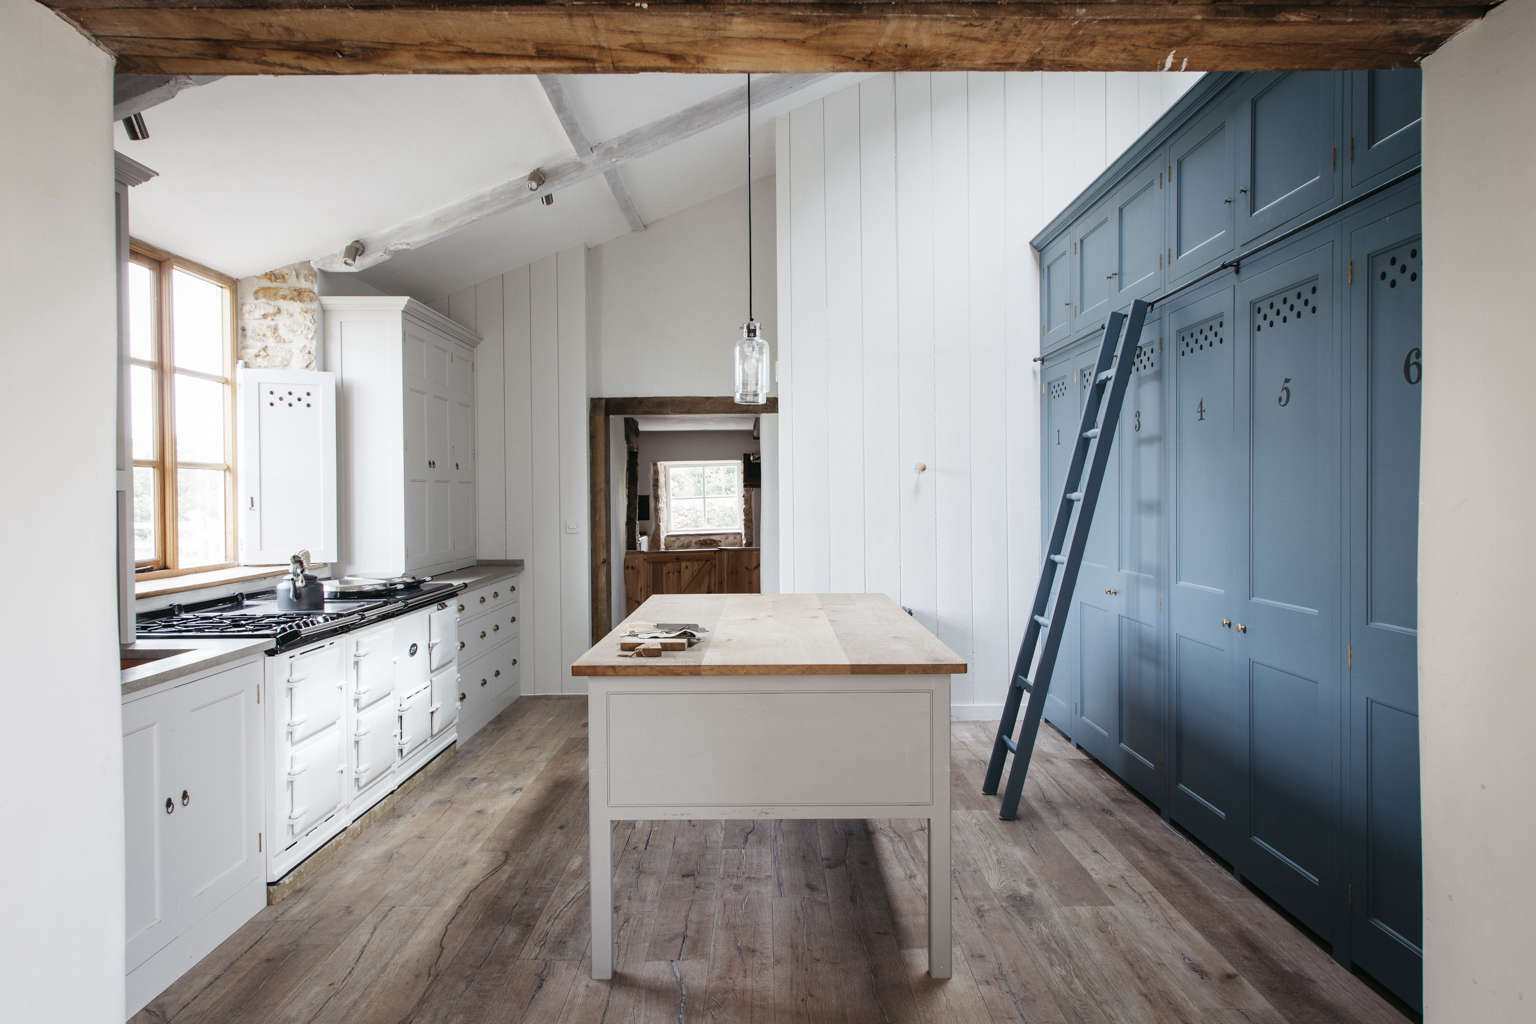 kitchen of the week the plain english power in numbers kitchen blue kitchen cabinets in a modern spin on a classic english kitchen by plain english